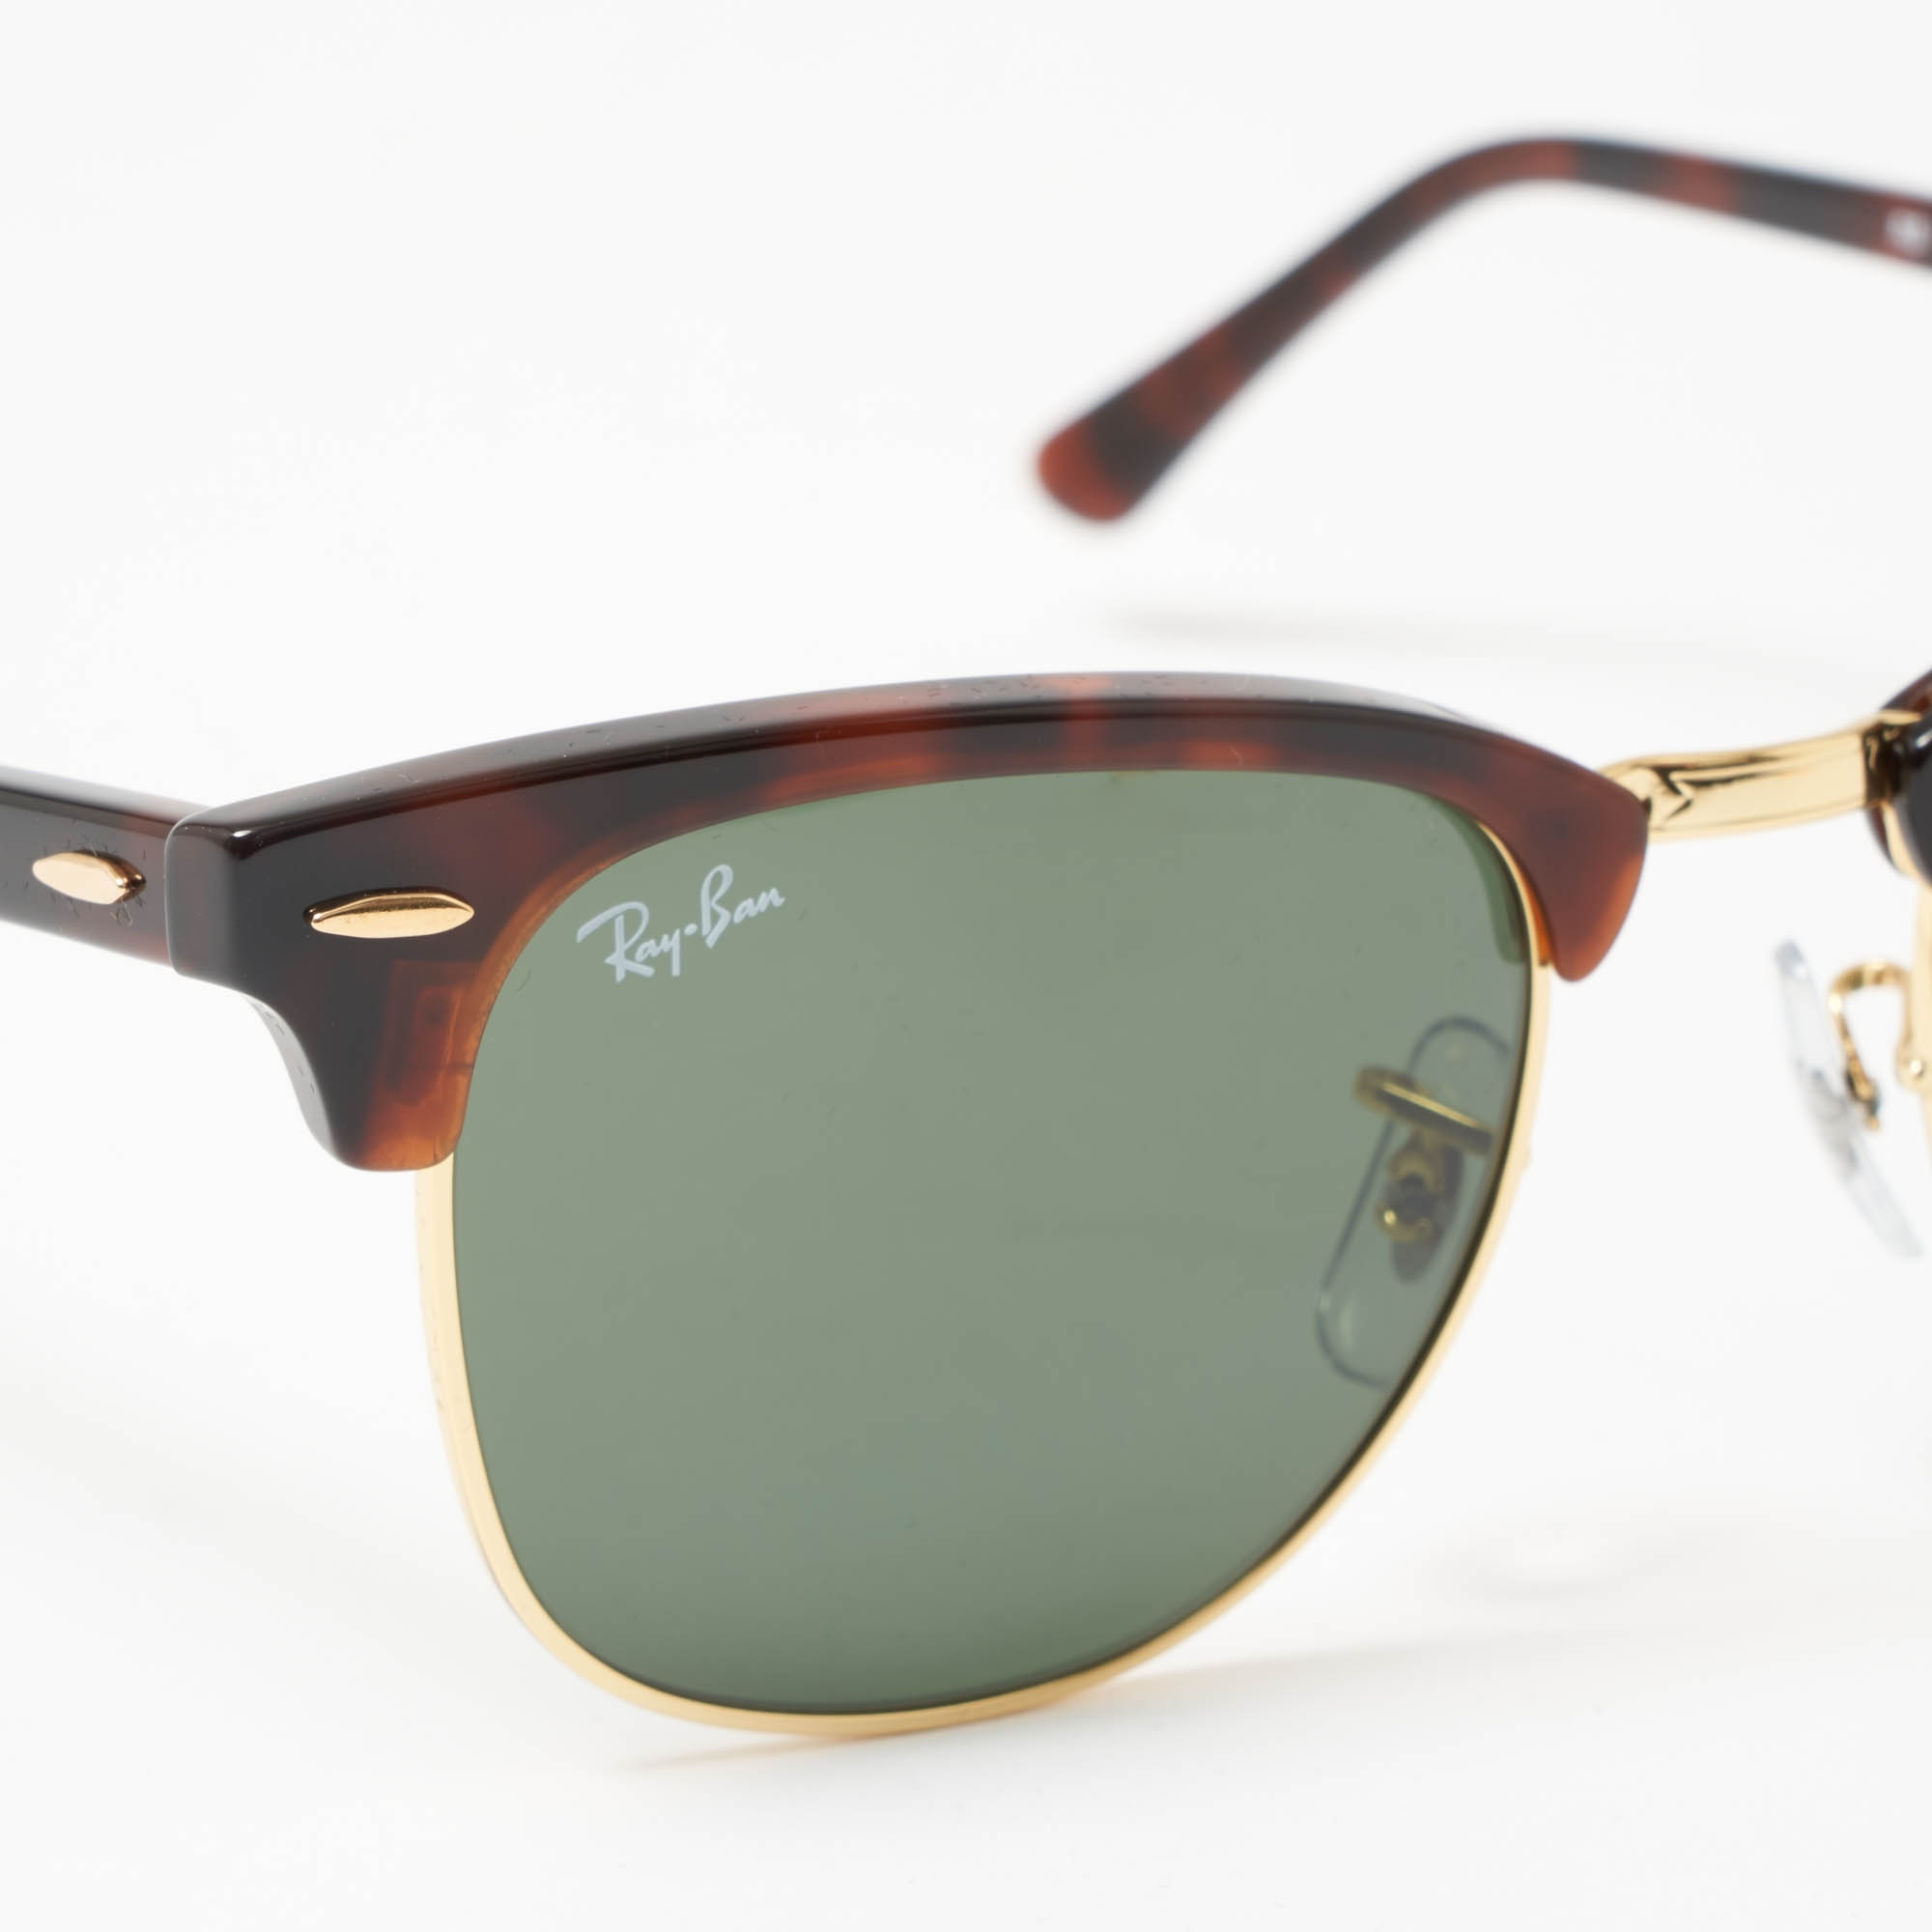 3a95774f4e Ray Ban Sunglasses Clubmaster (rb3016 W0366 49) « One More Soul